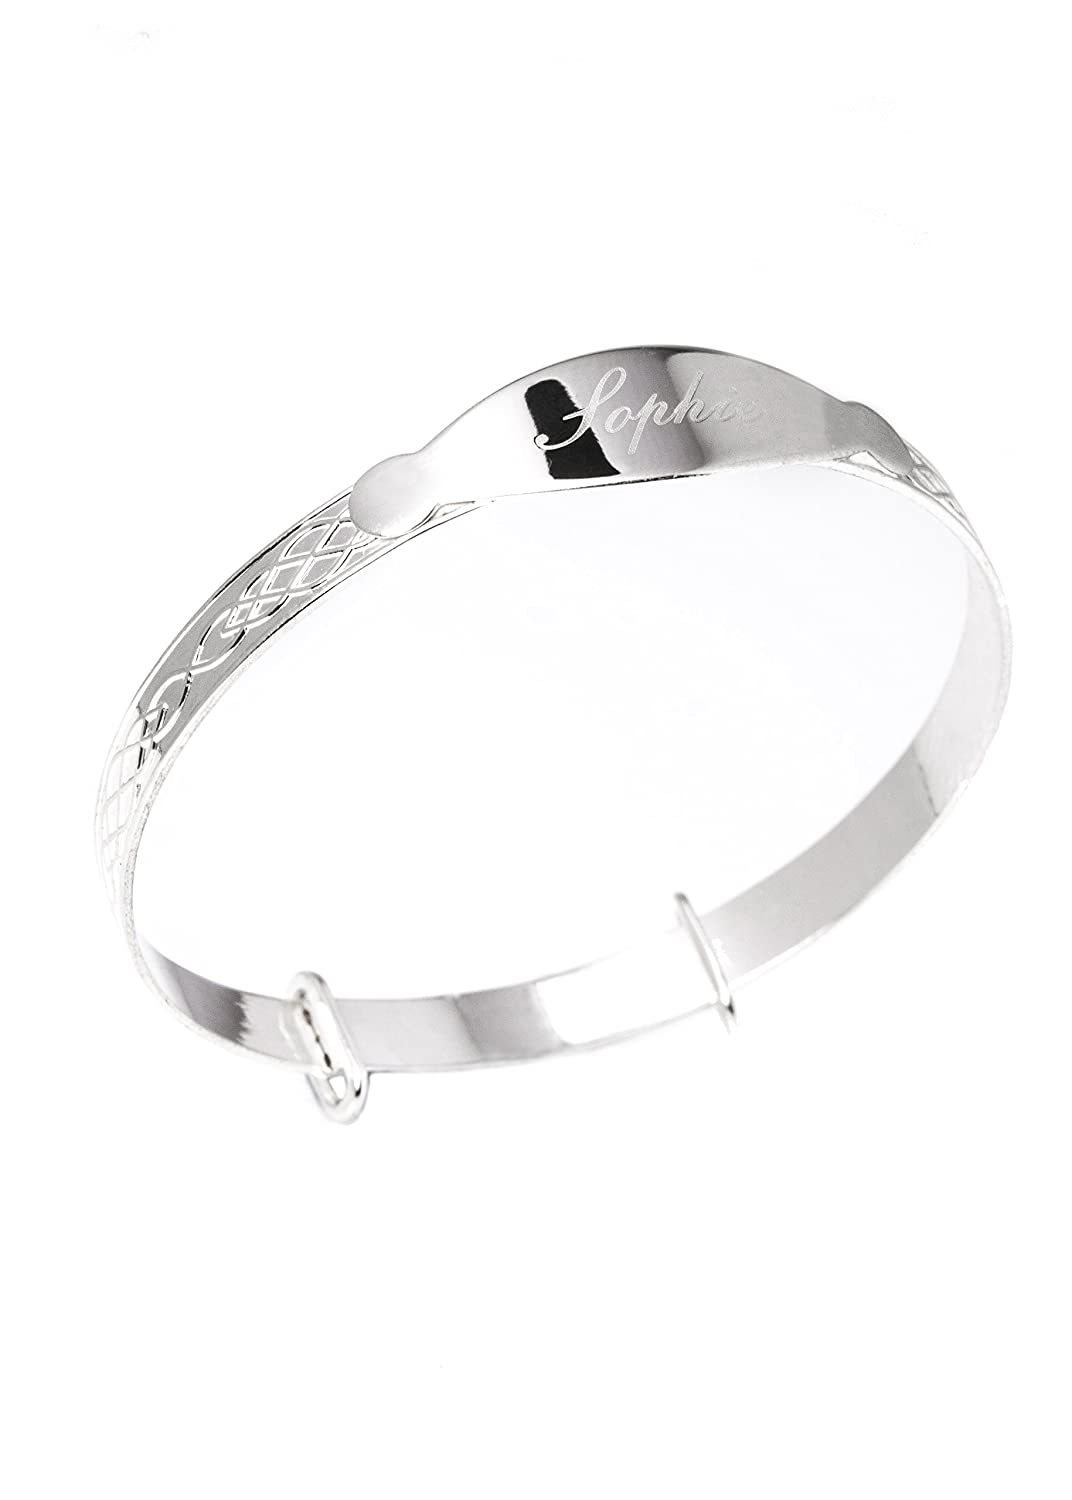 ece6bb6ed4e3d Sterling Silver Expander Personalised Bracelet Bangle for Babies